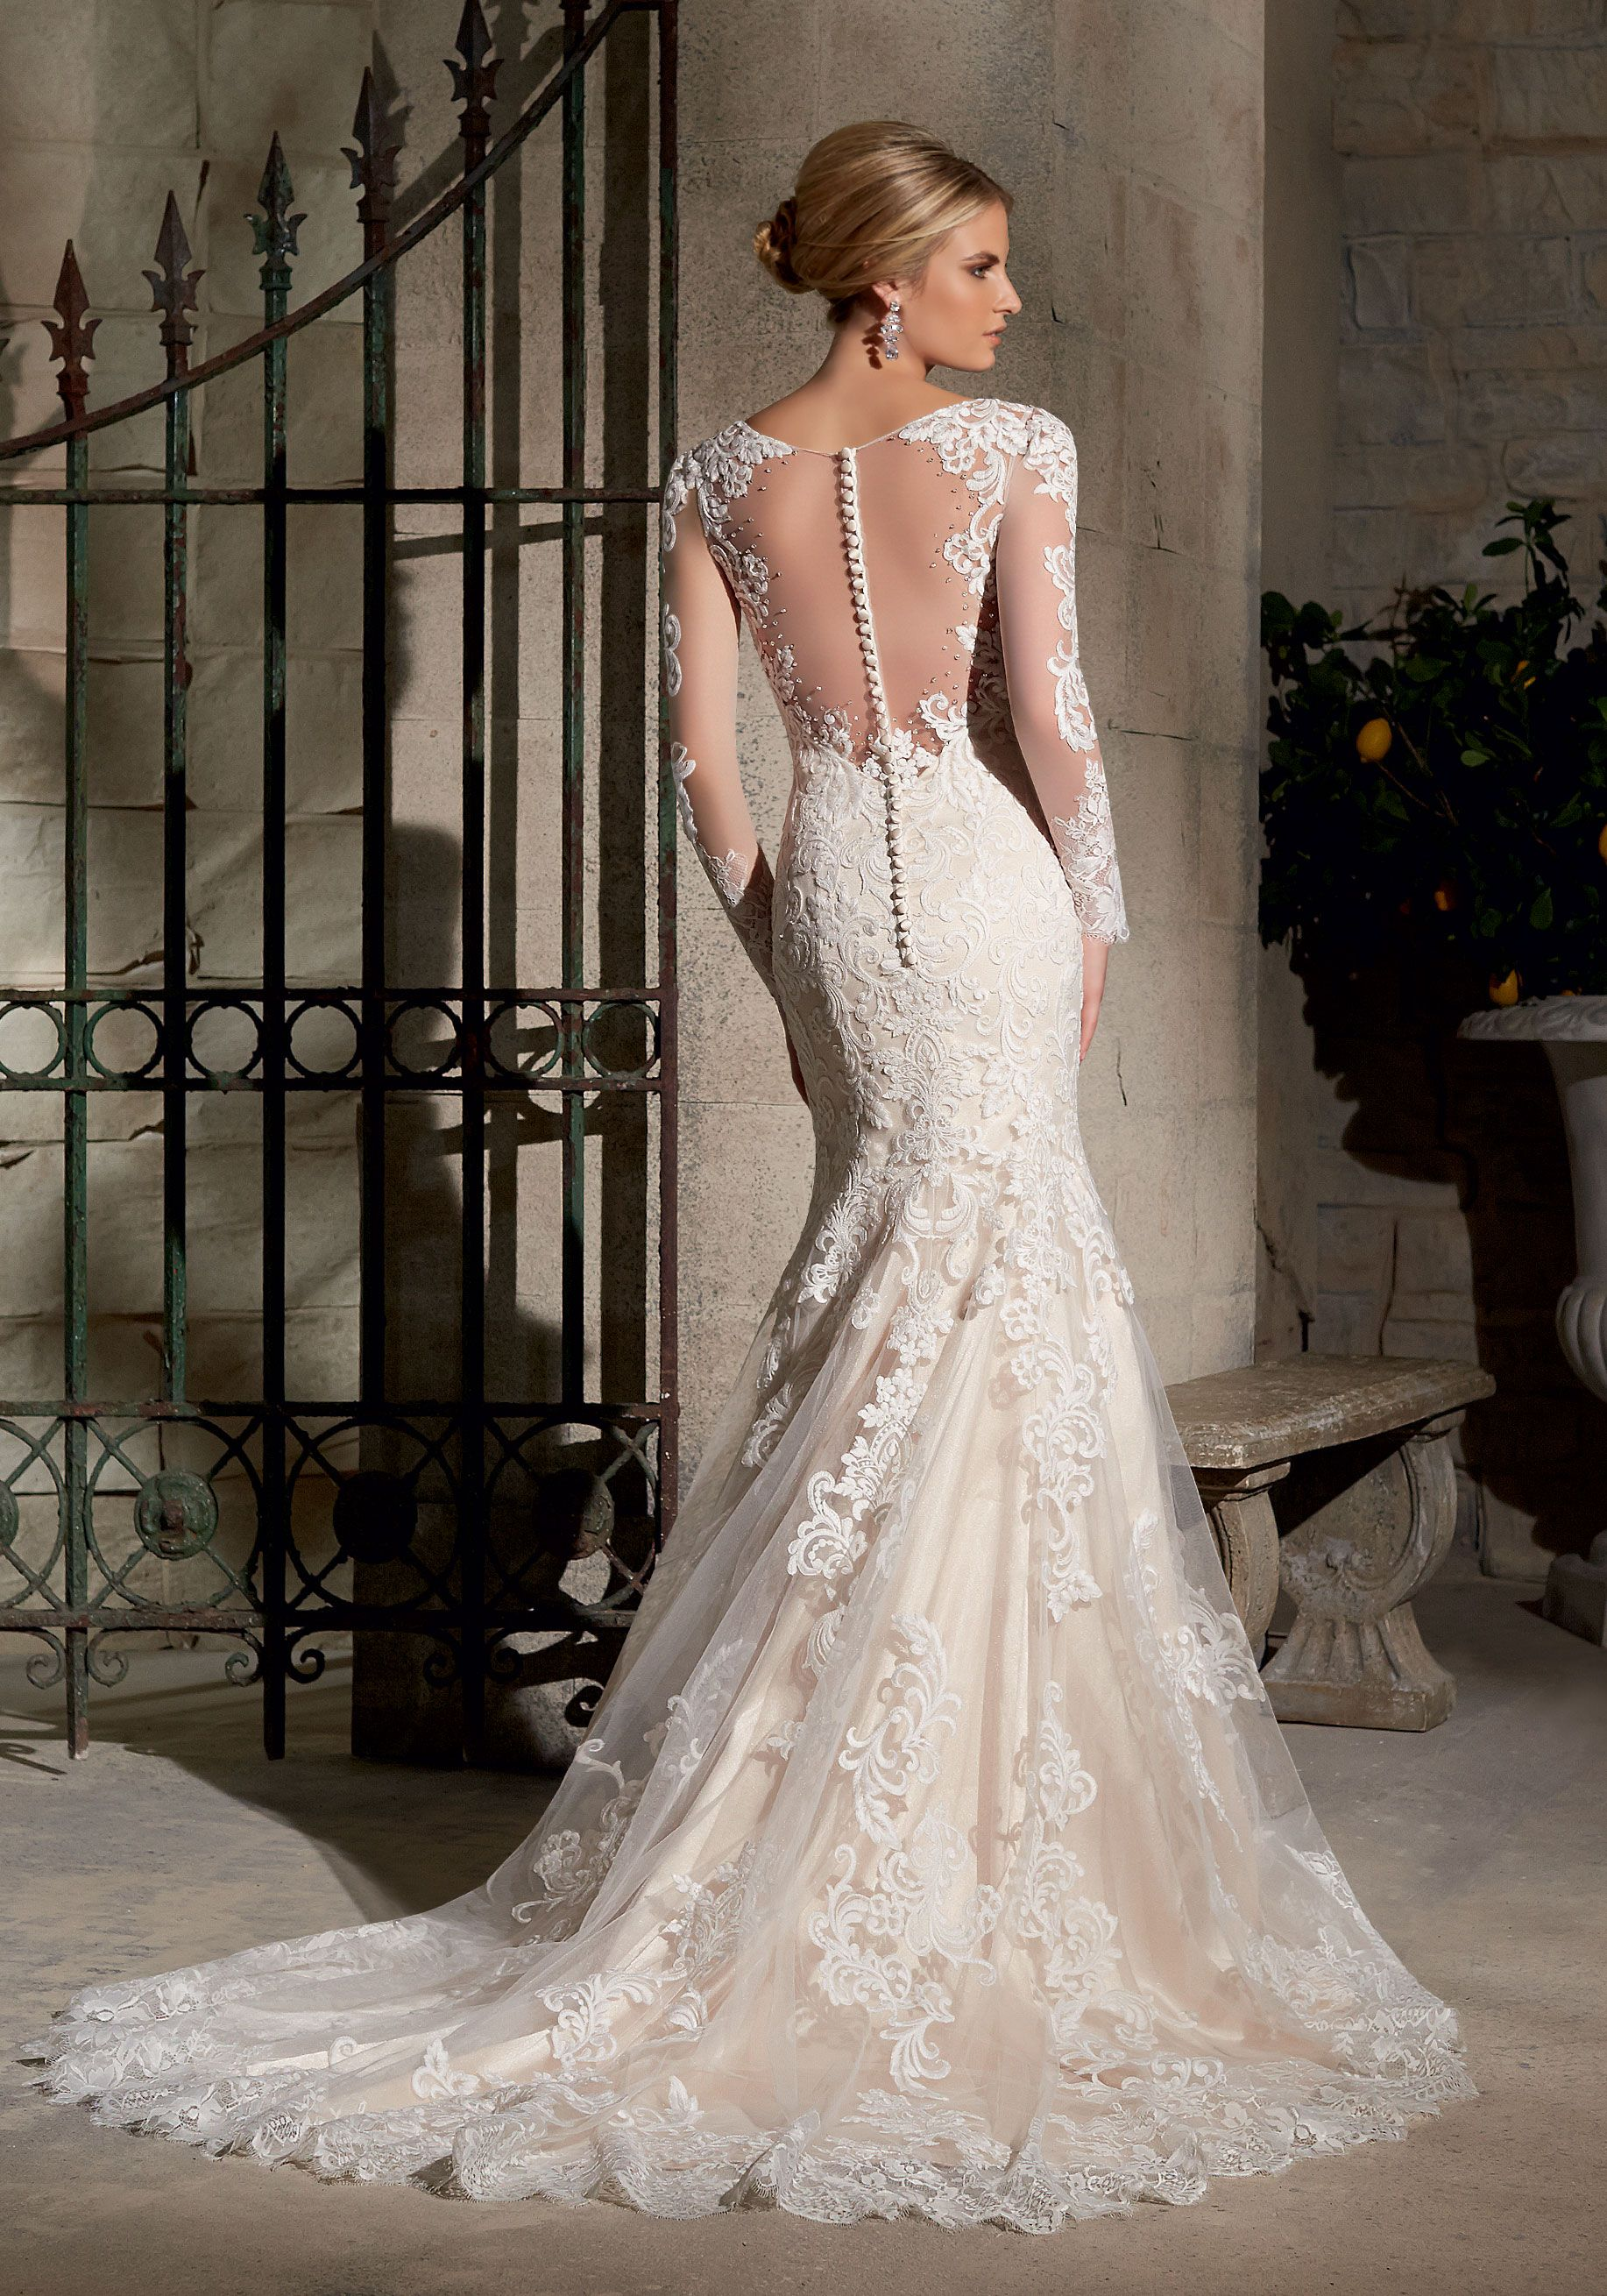 Majestic Embroidered Appliqués Combined with Chantilly Lace on Net